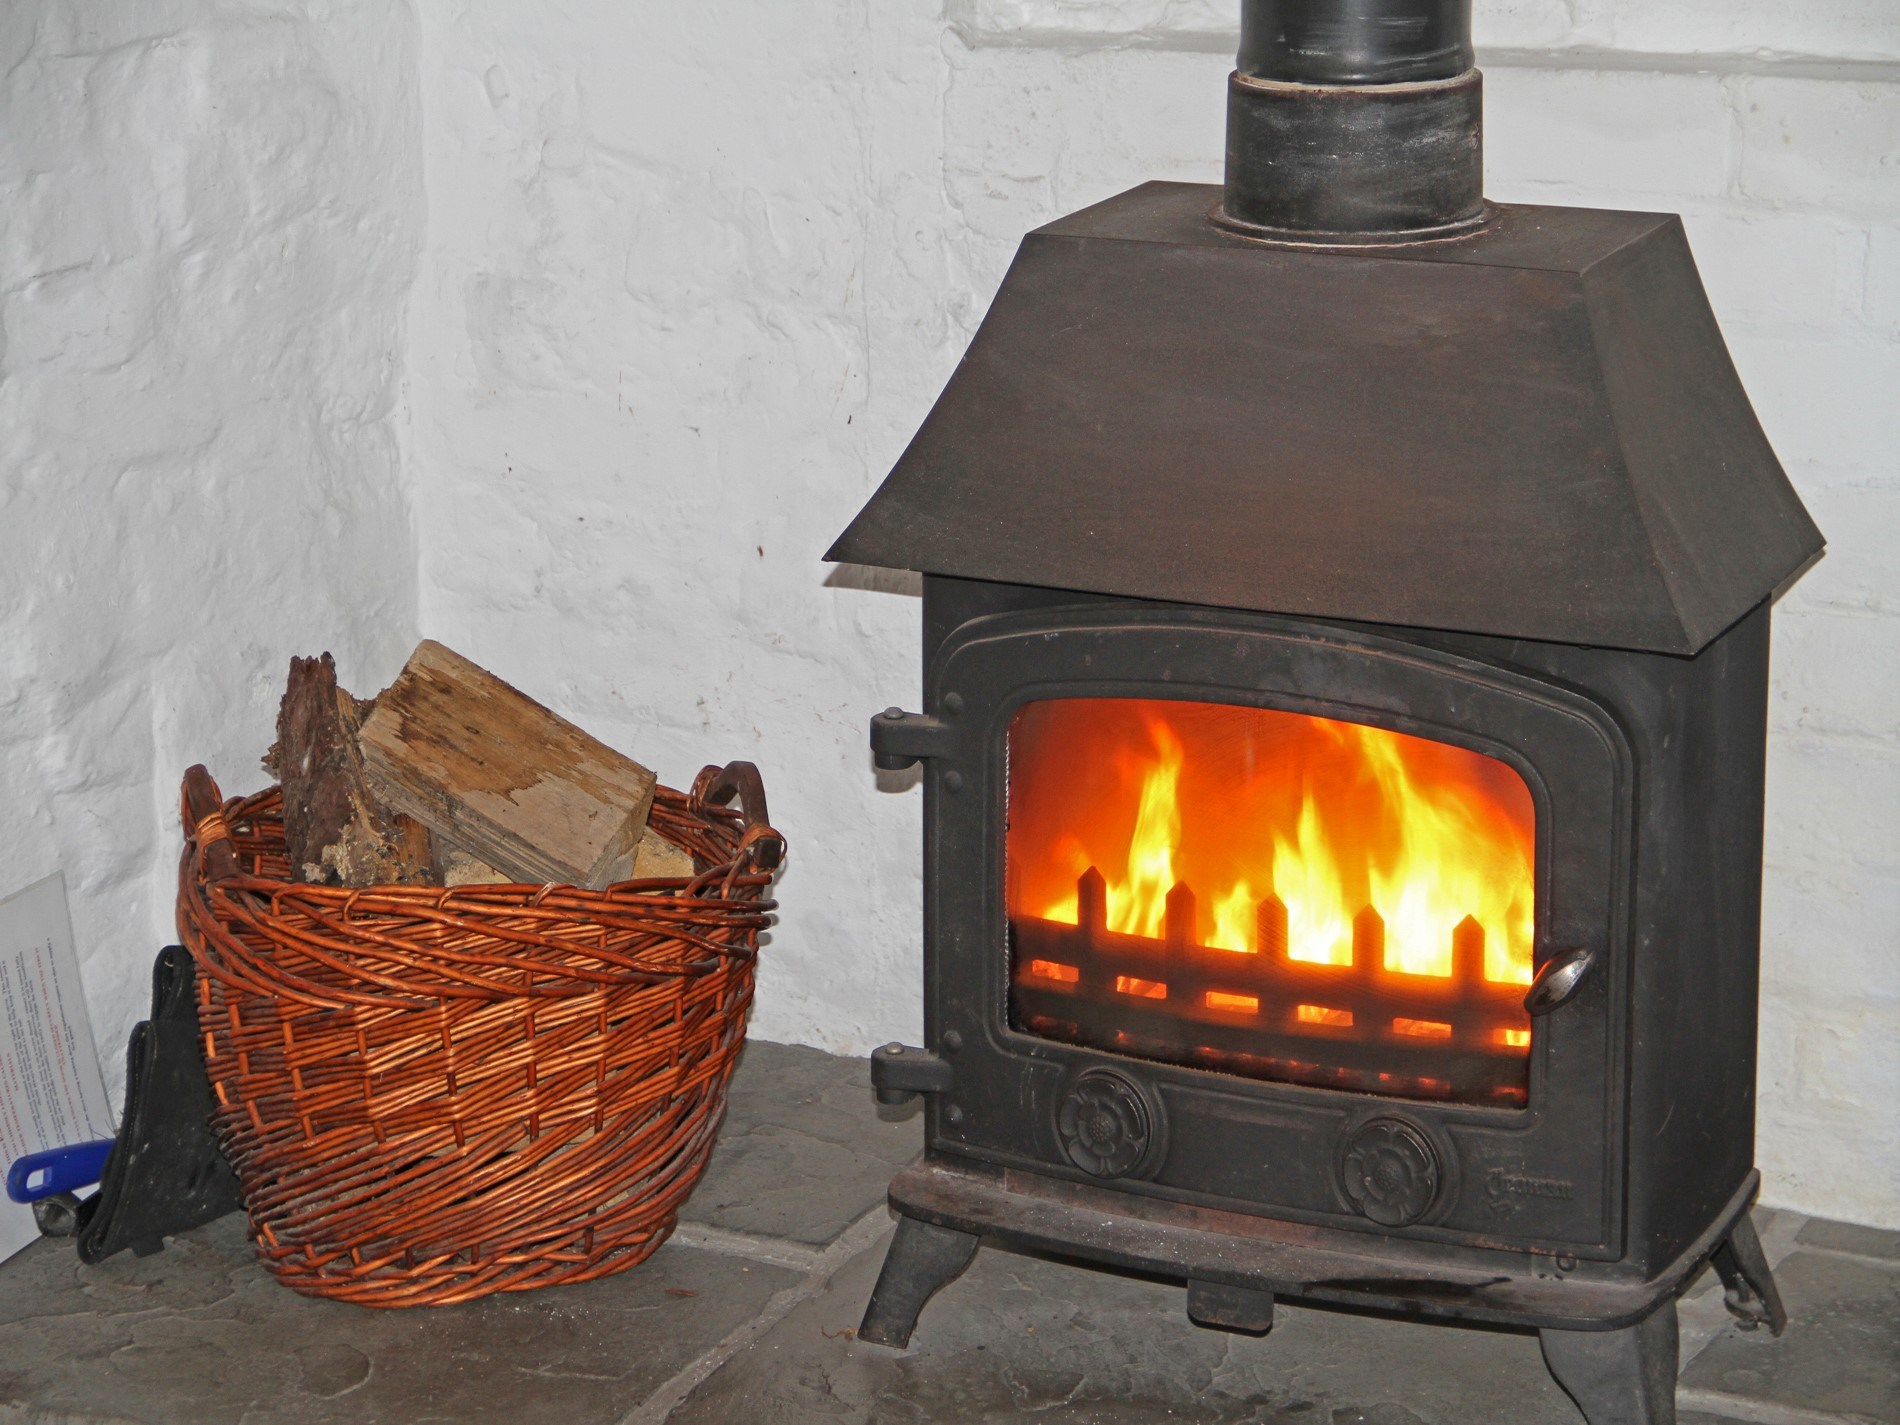 Cosy up beside the woodburner